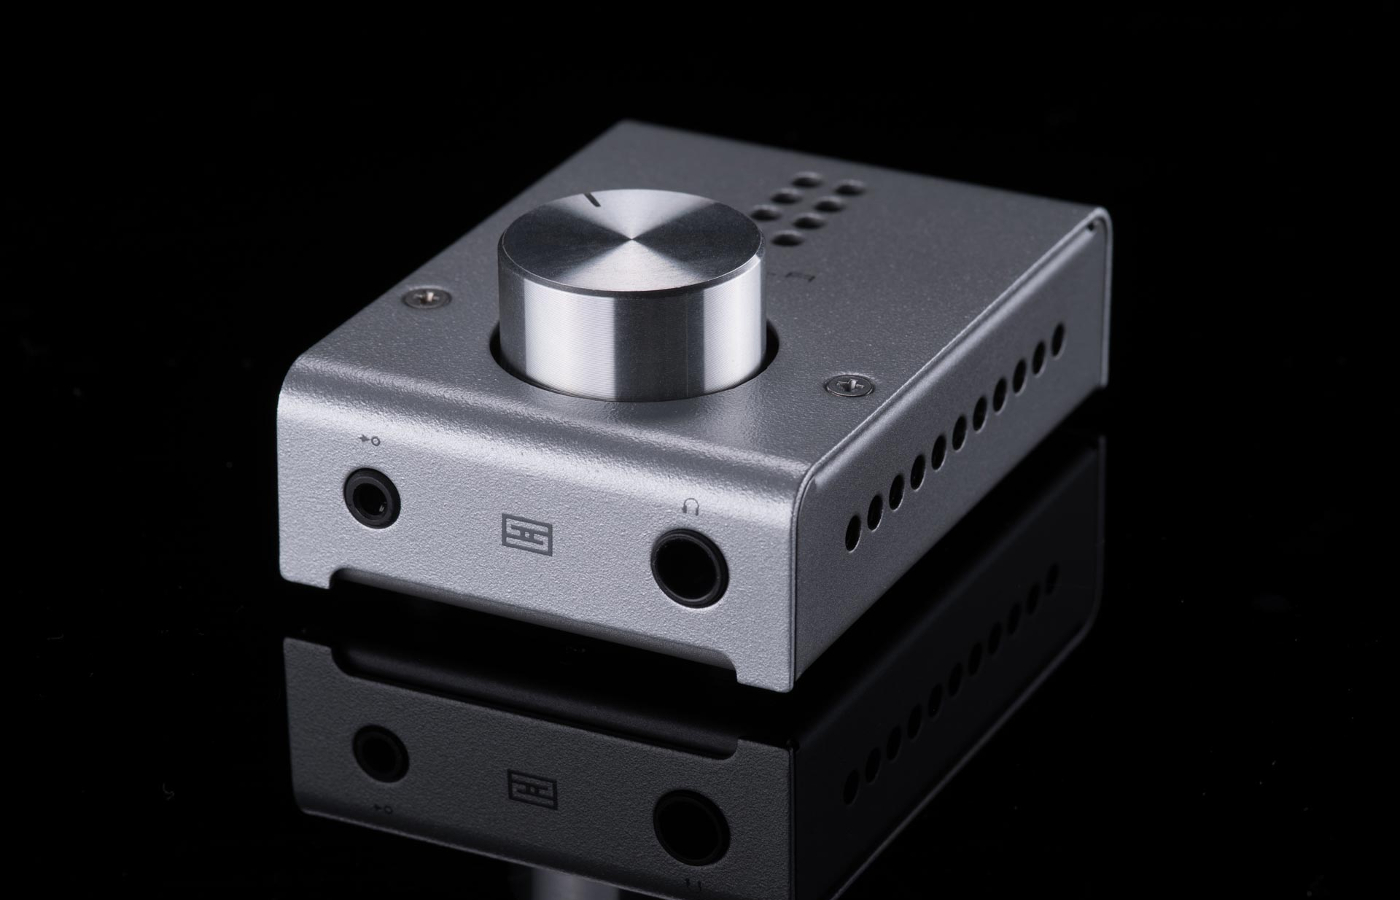 Schiit Fulla 2: the all-new all-in-one desktop DAC/amp from